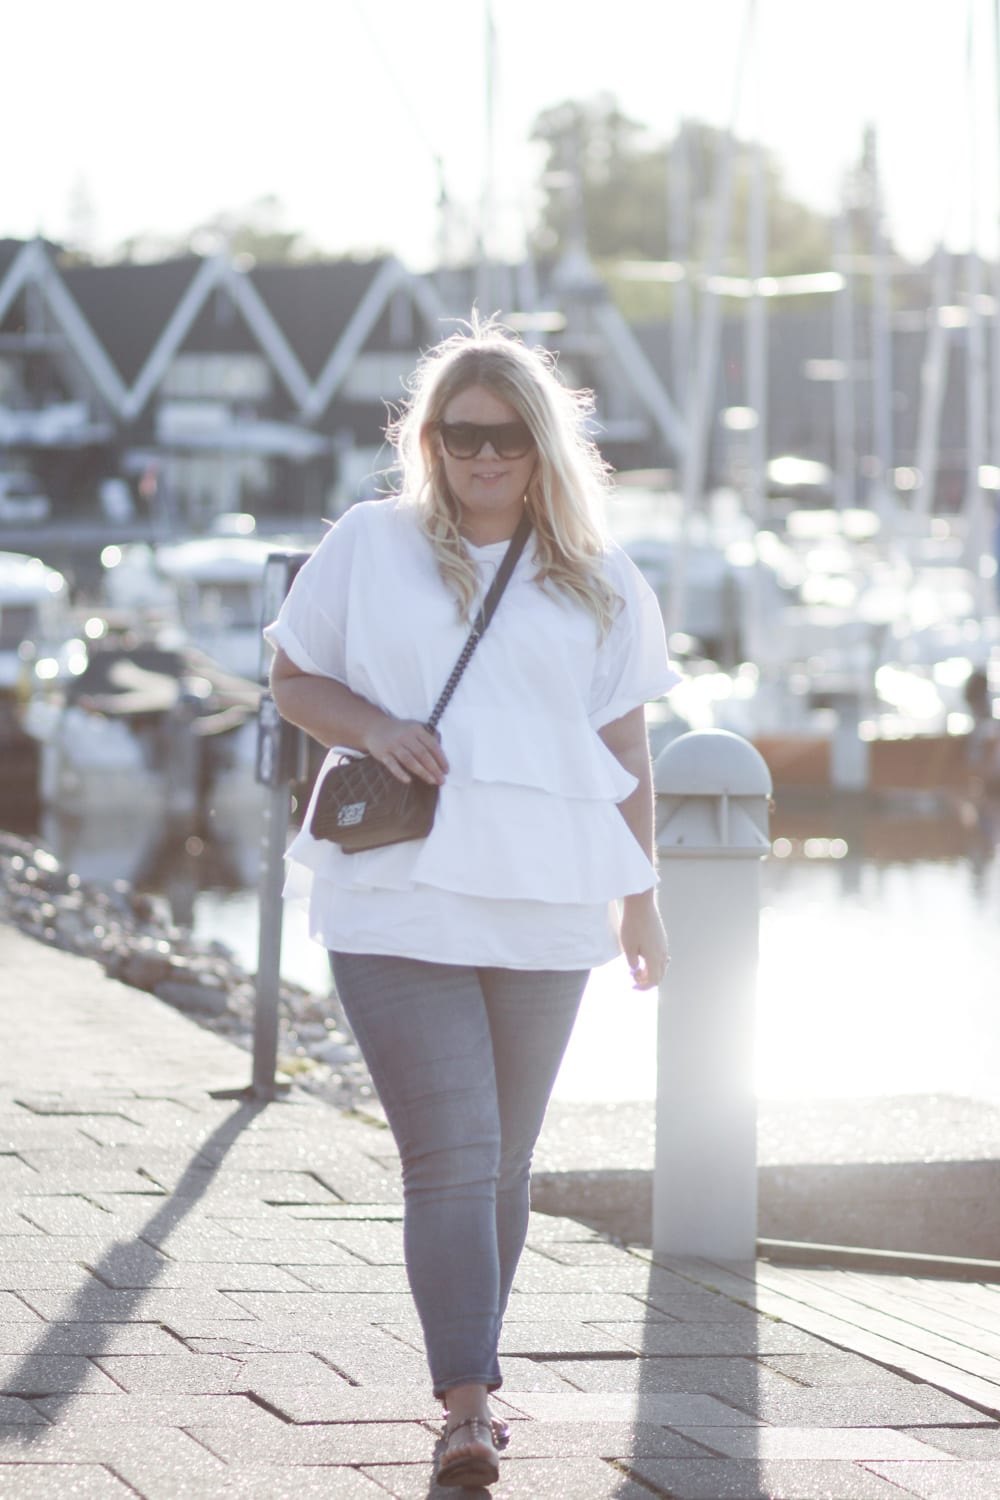 acie-outfit-rungsted-zara-tee-flaeser-celine-15-of-23